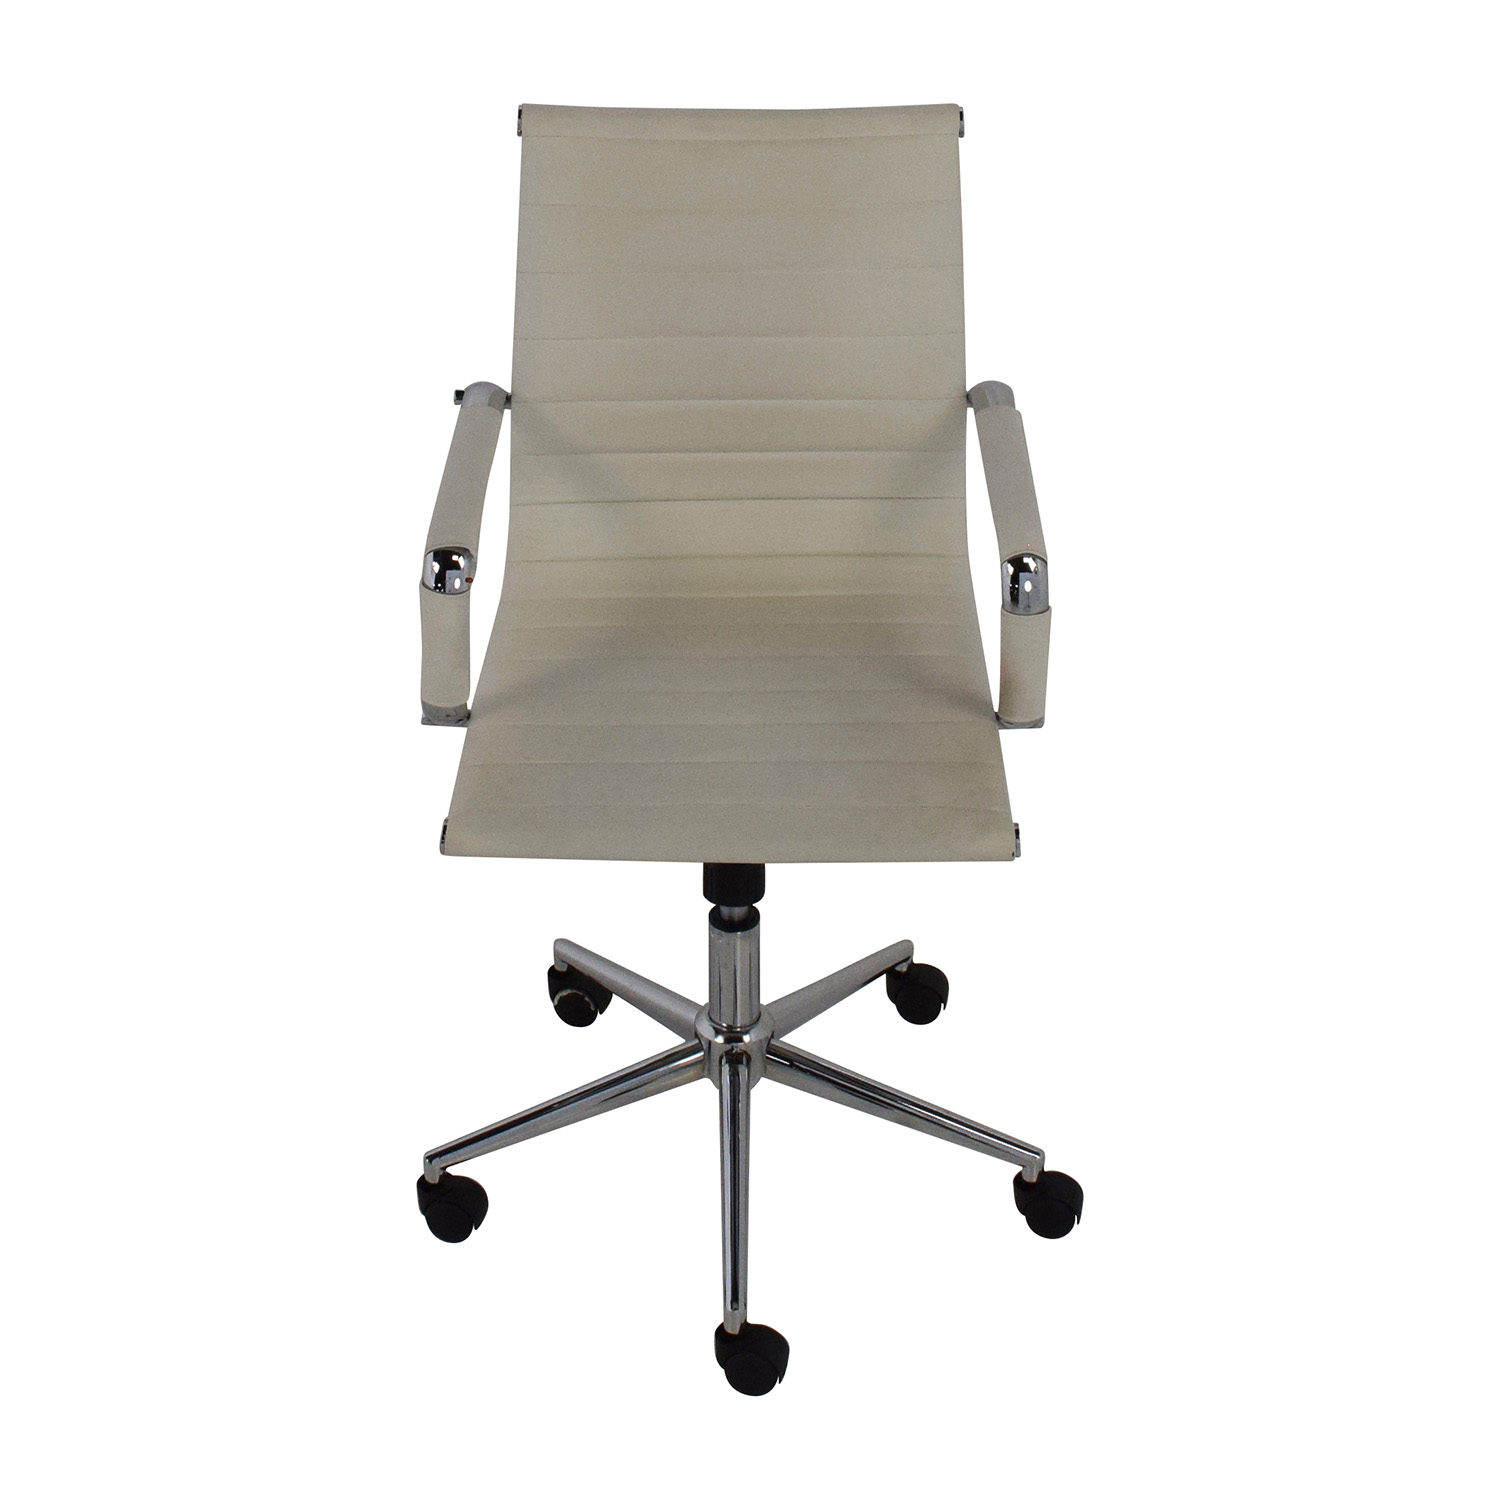 shop 2Xhome Modern Mid Back White Faux Leather Office Chair 2xhome Home Office Chairs